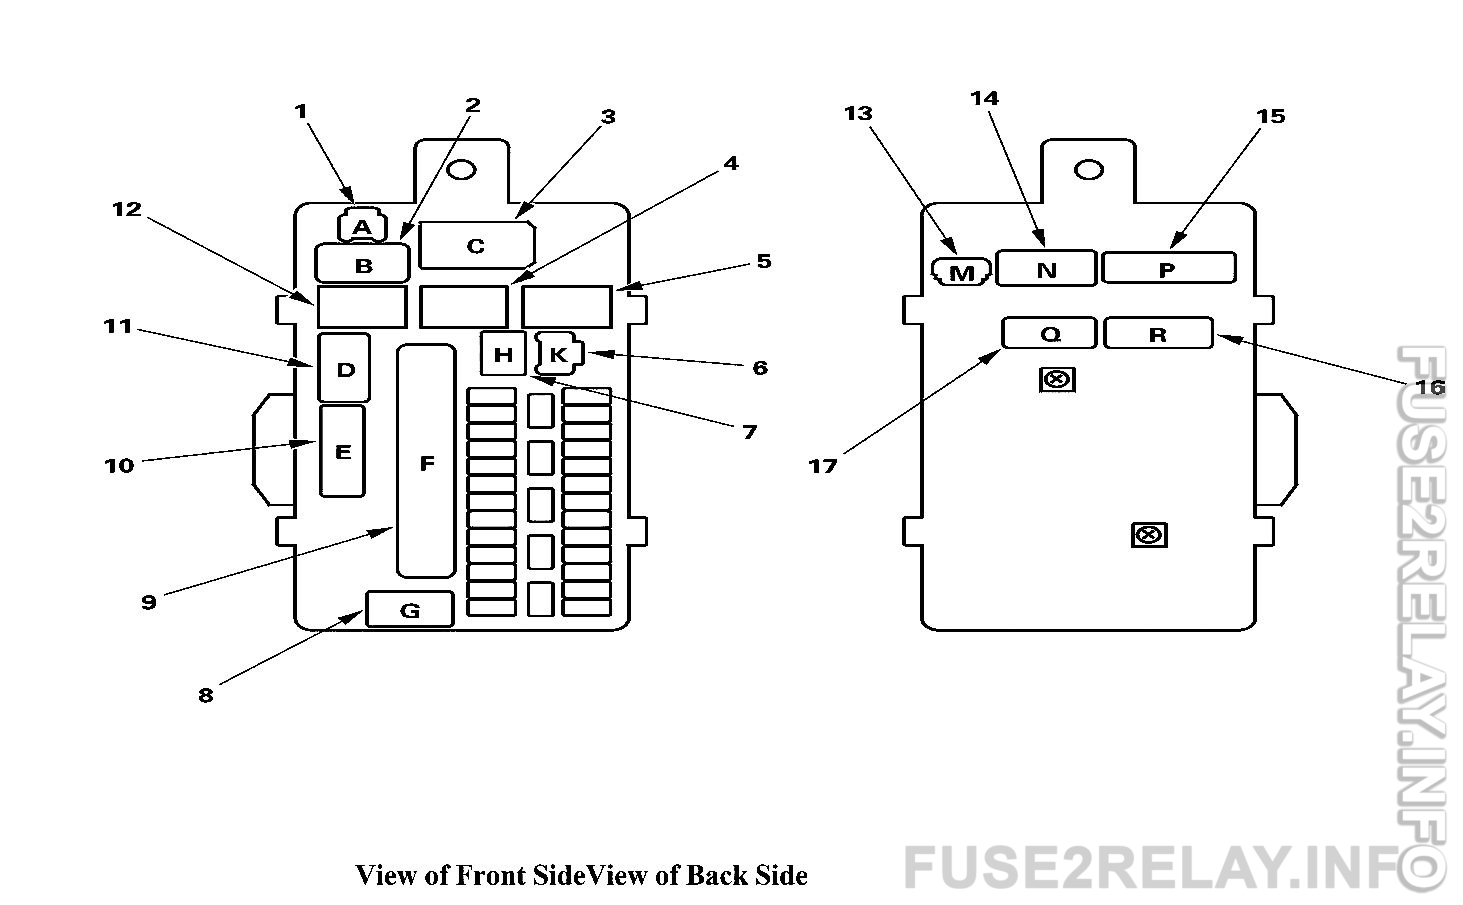 Acura TL (2013 - 2014) fuse relay box diagram